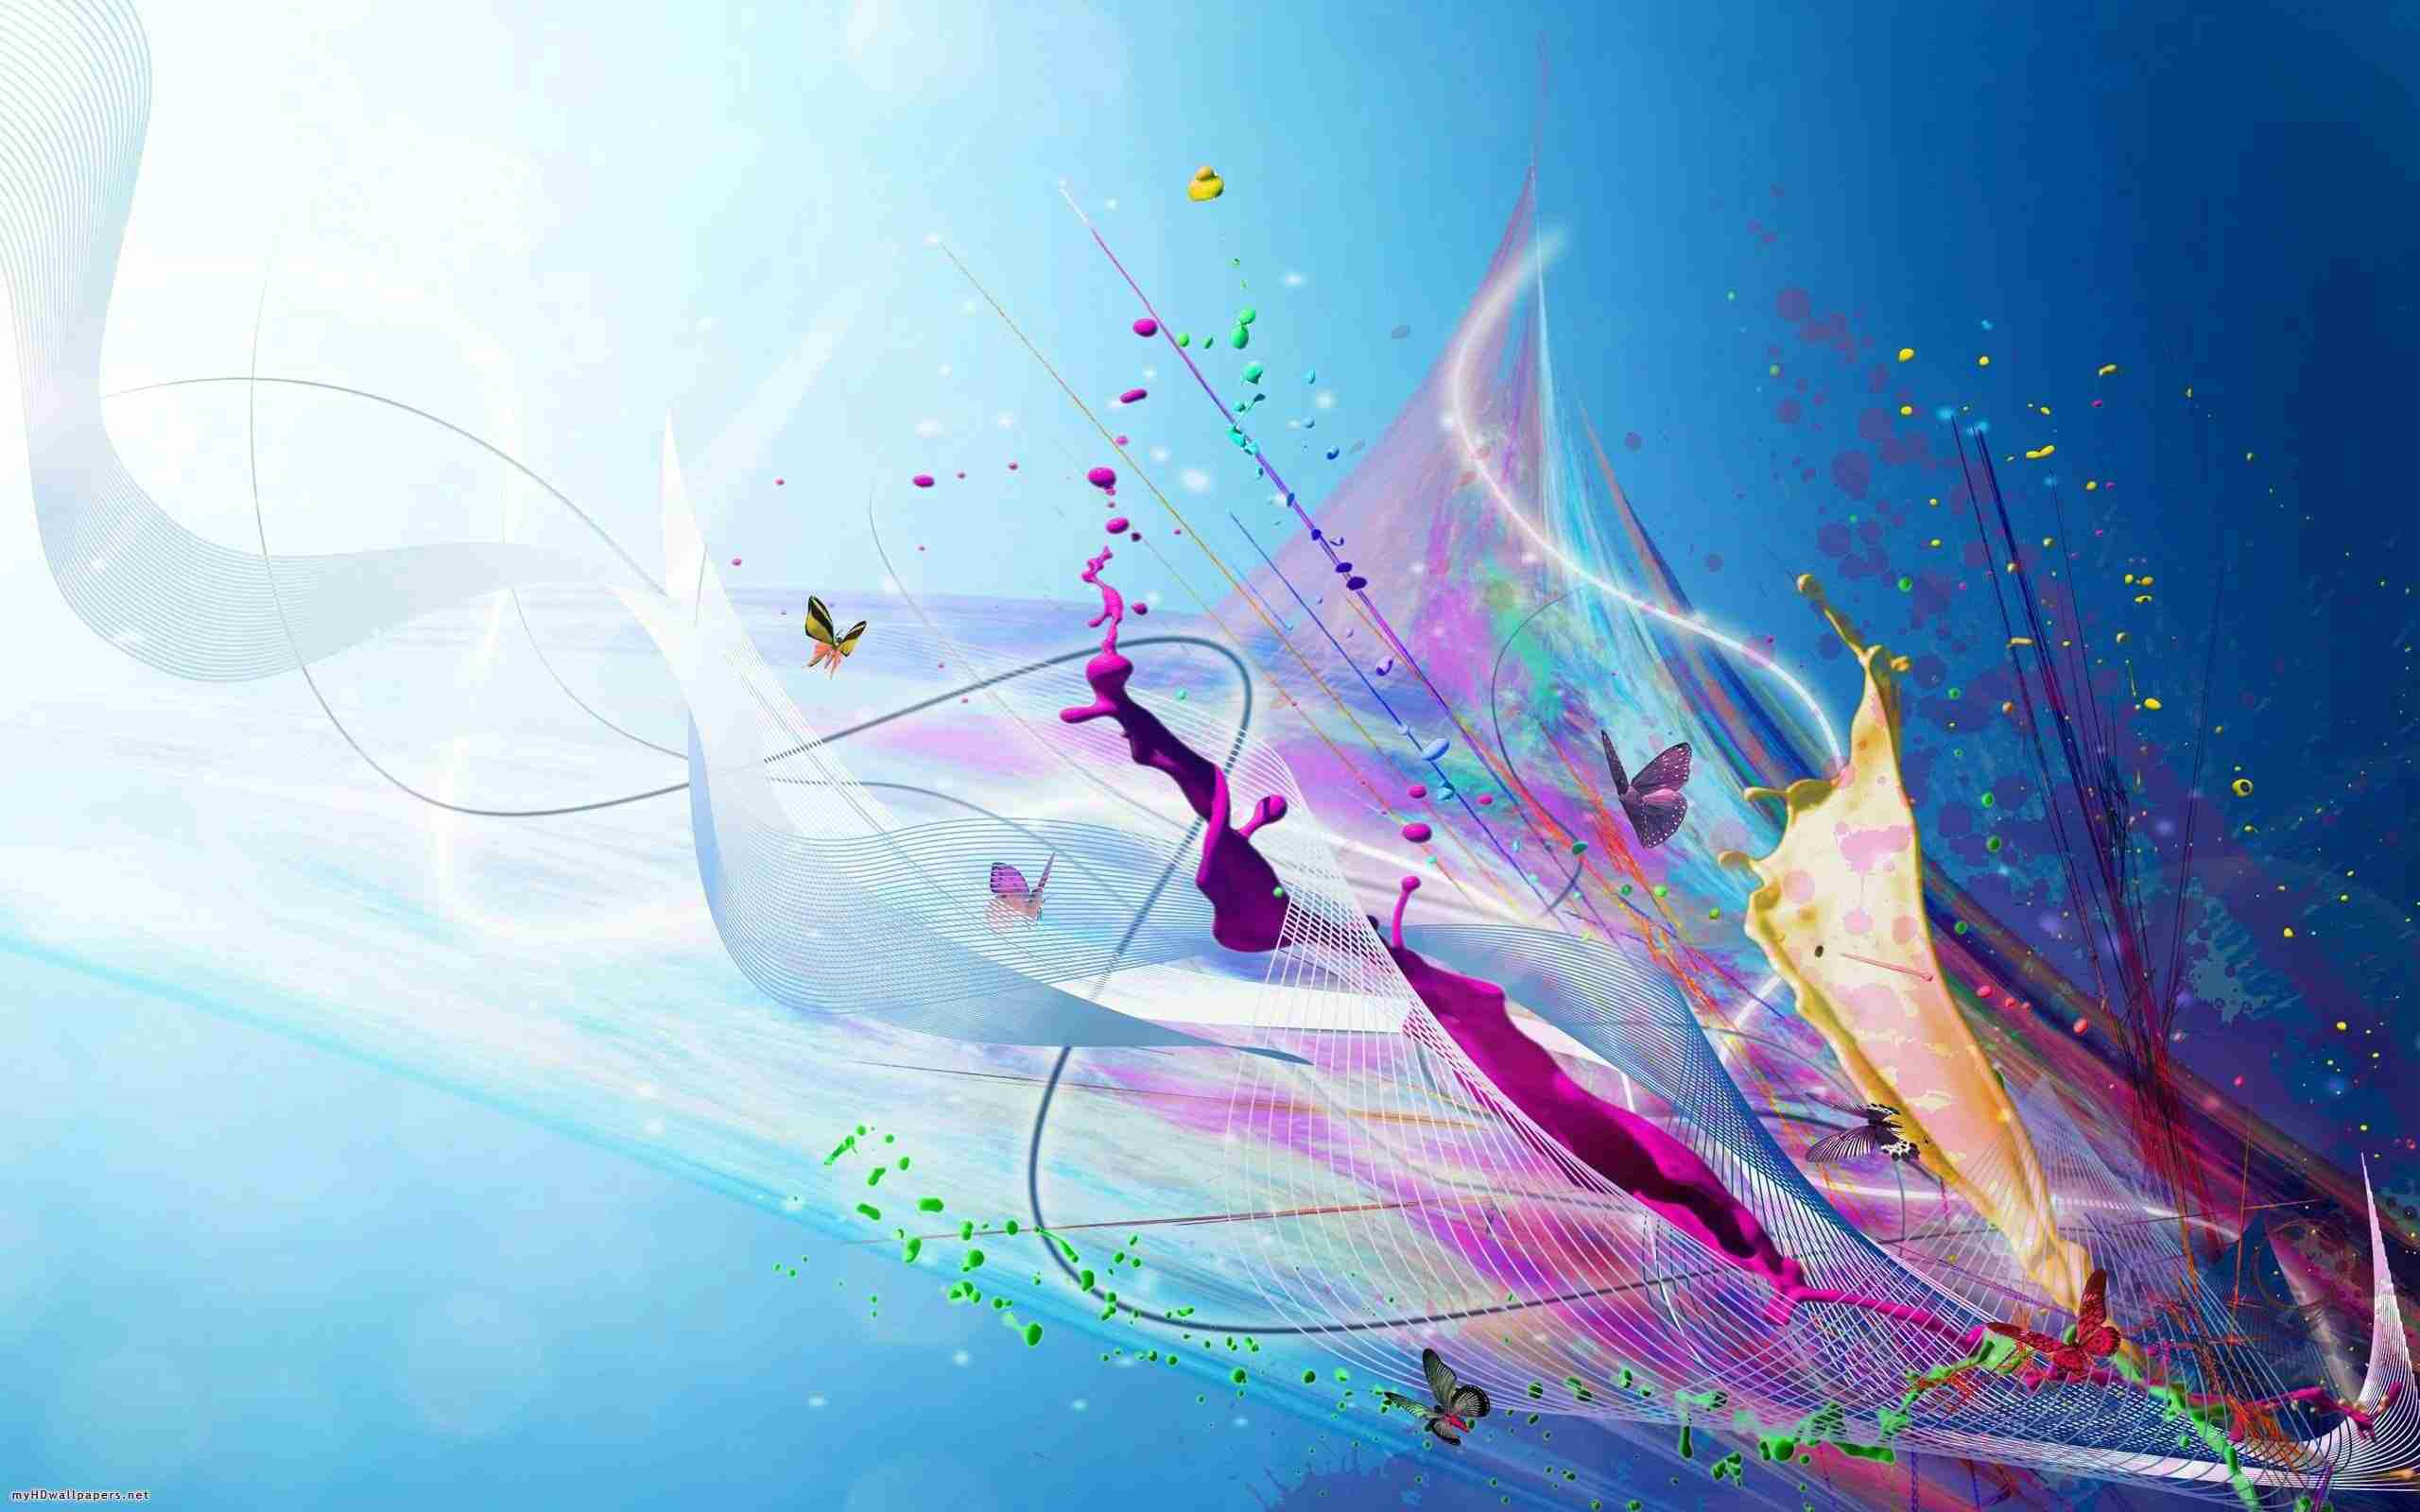 The Top Free Android Mobile Phone Themes And Live Wallpaper - Abstract Art Backgrounds - HD Wallpaper